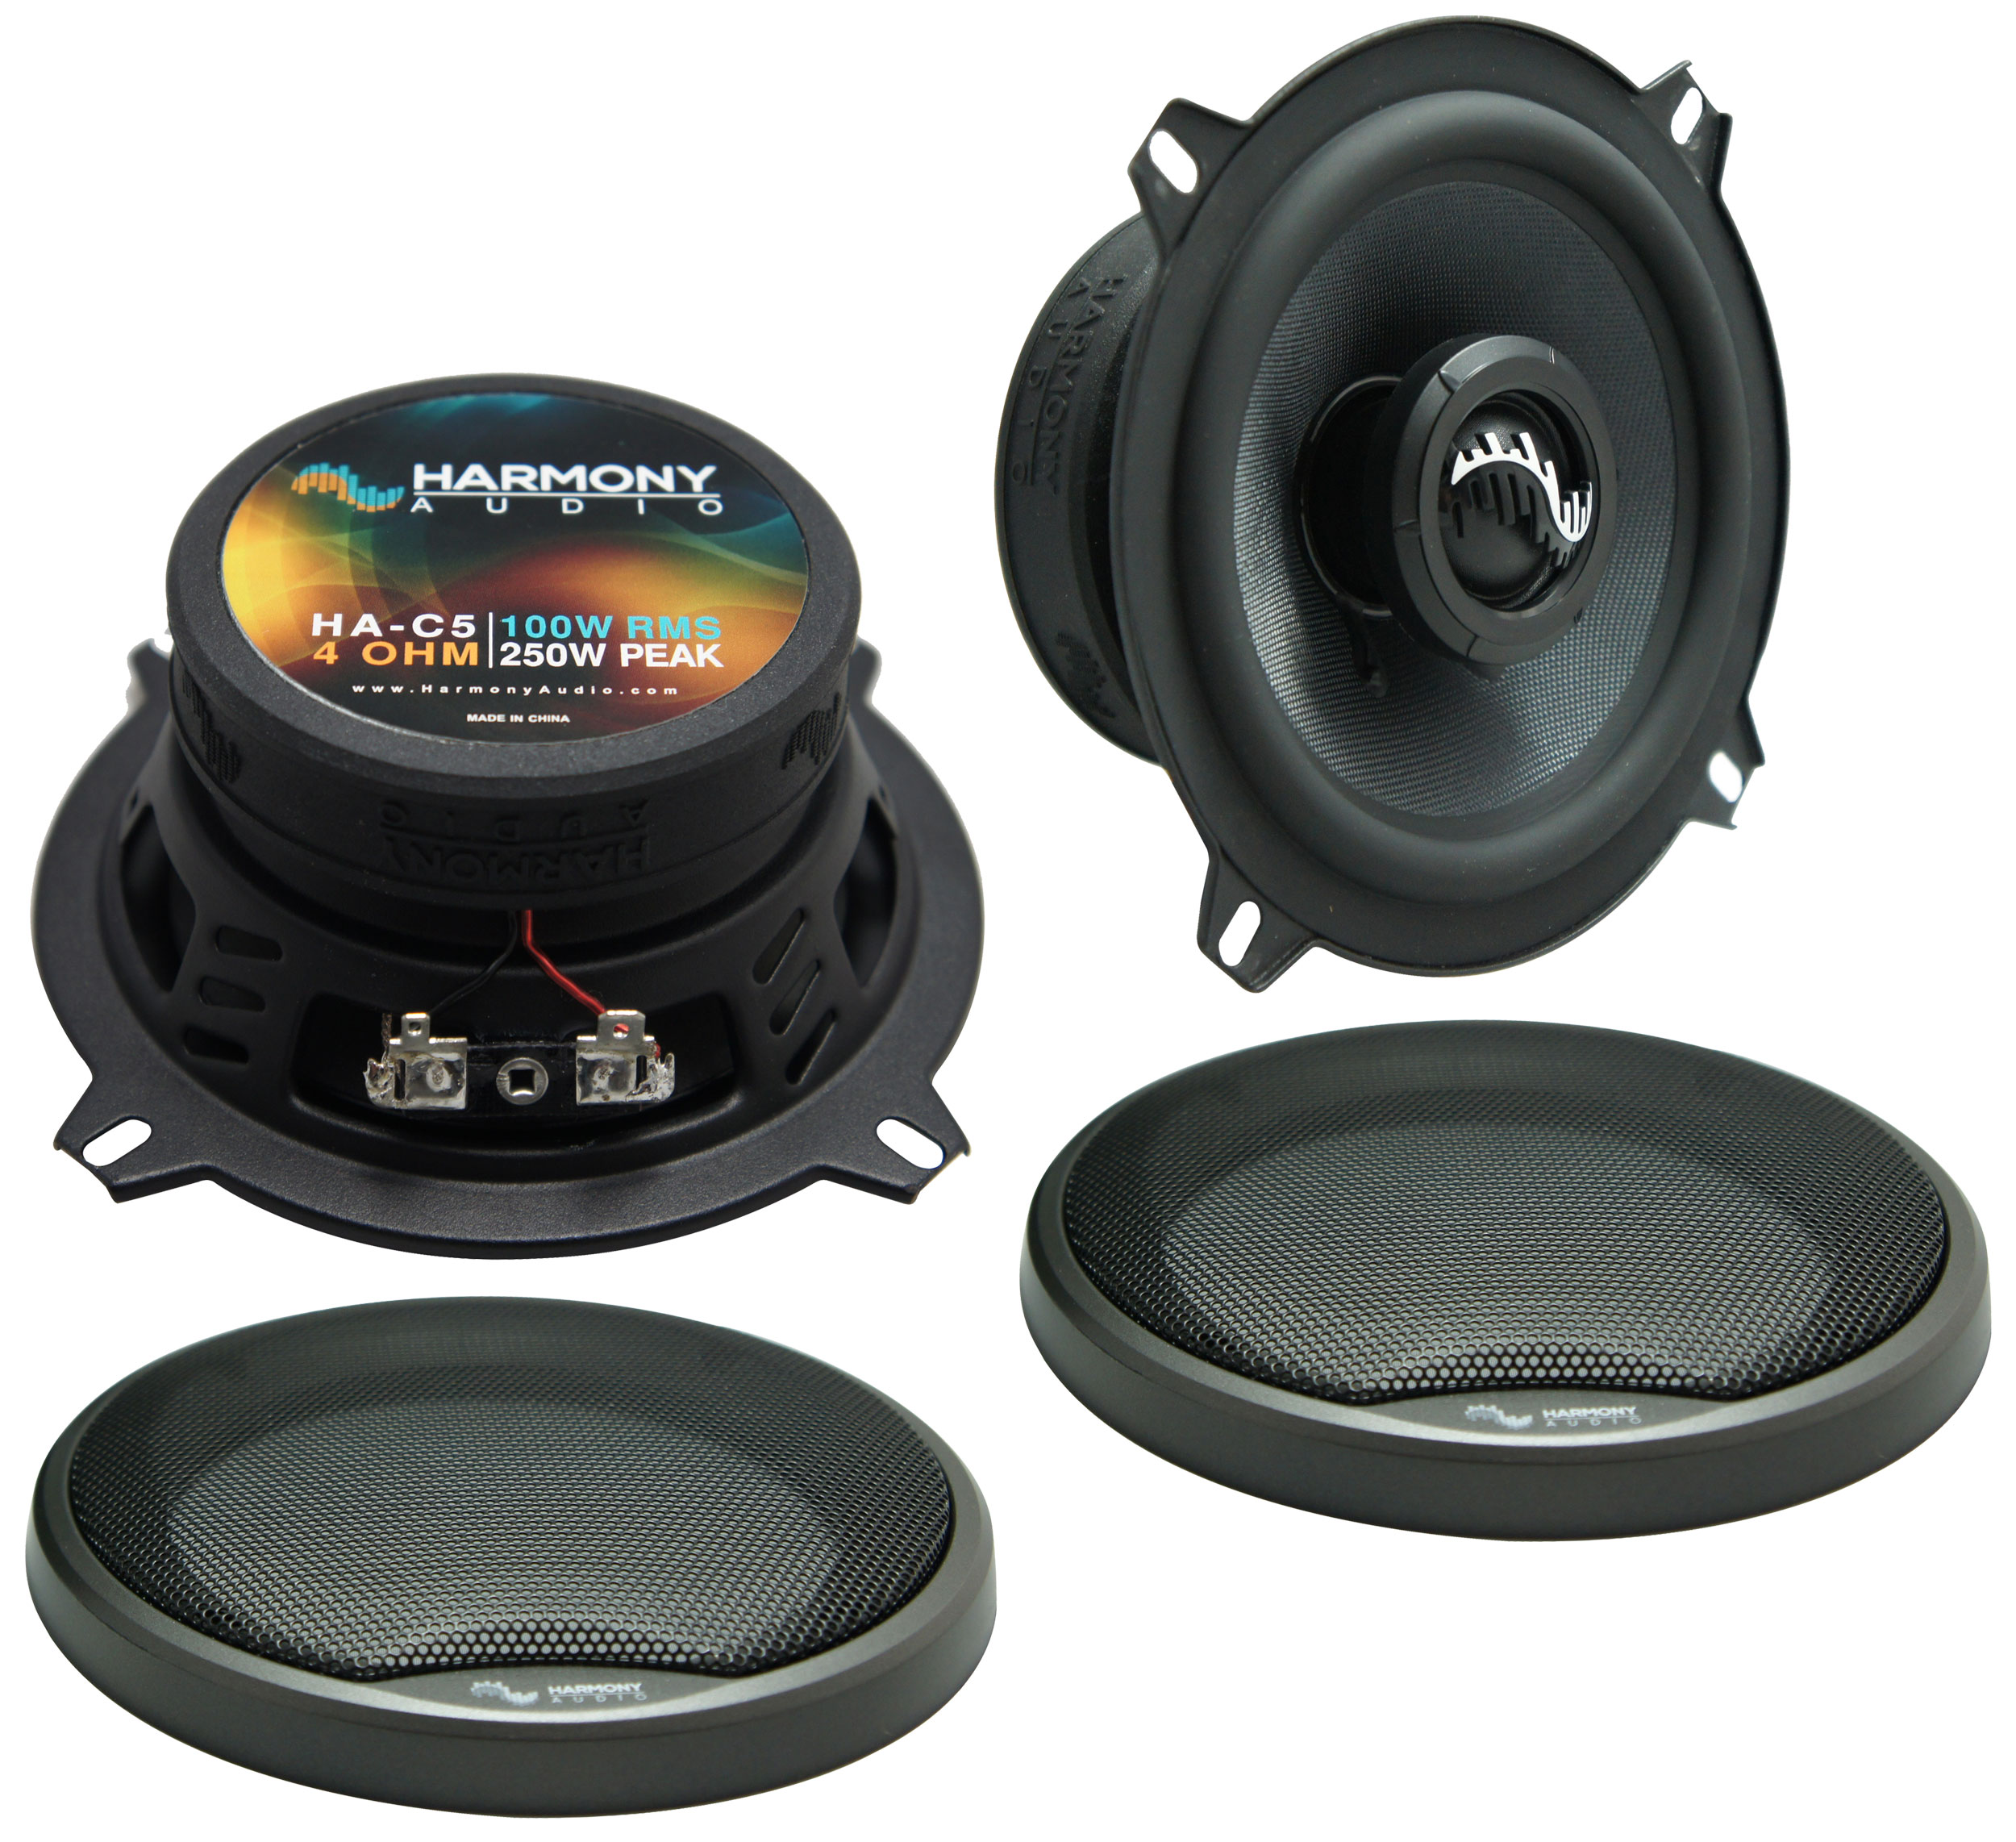 Fits Hyundai Accent 2002-2005 Rear Deck Replacement Harmony HA-C5 Premium Speakers New